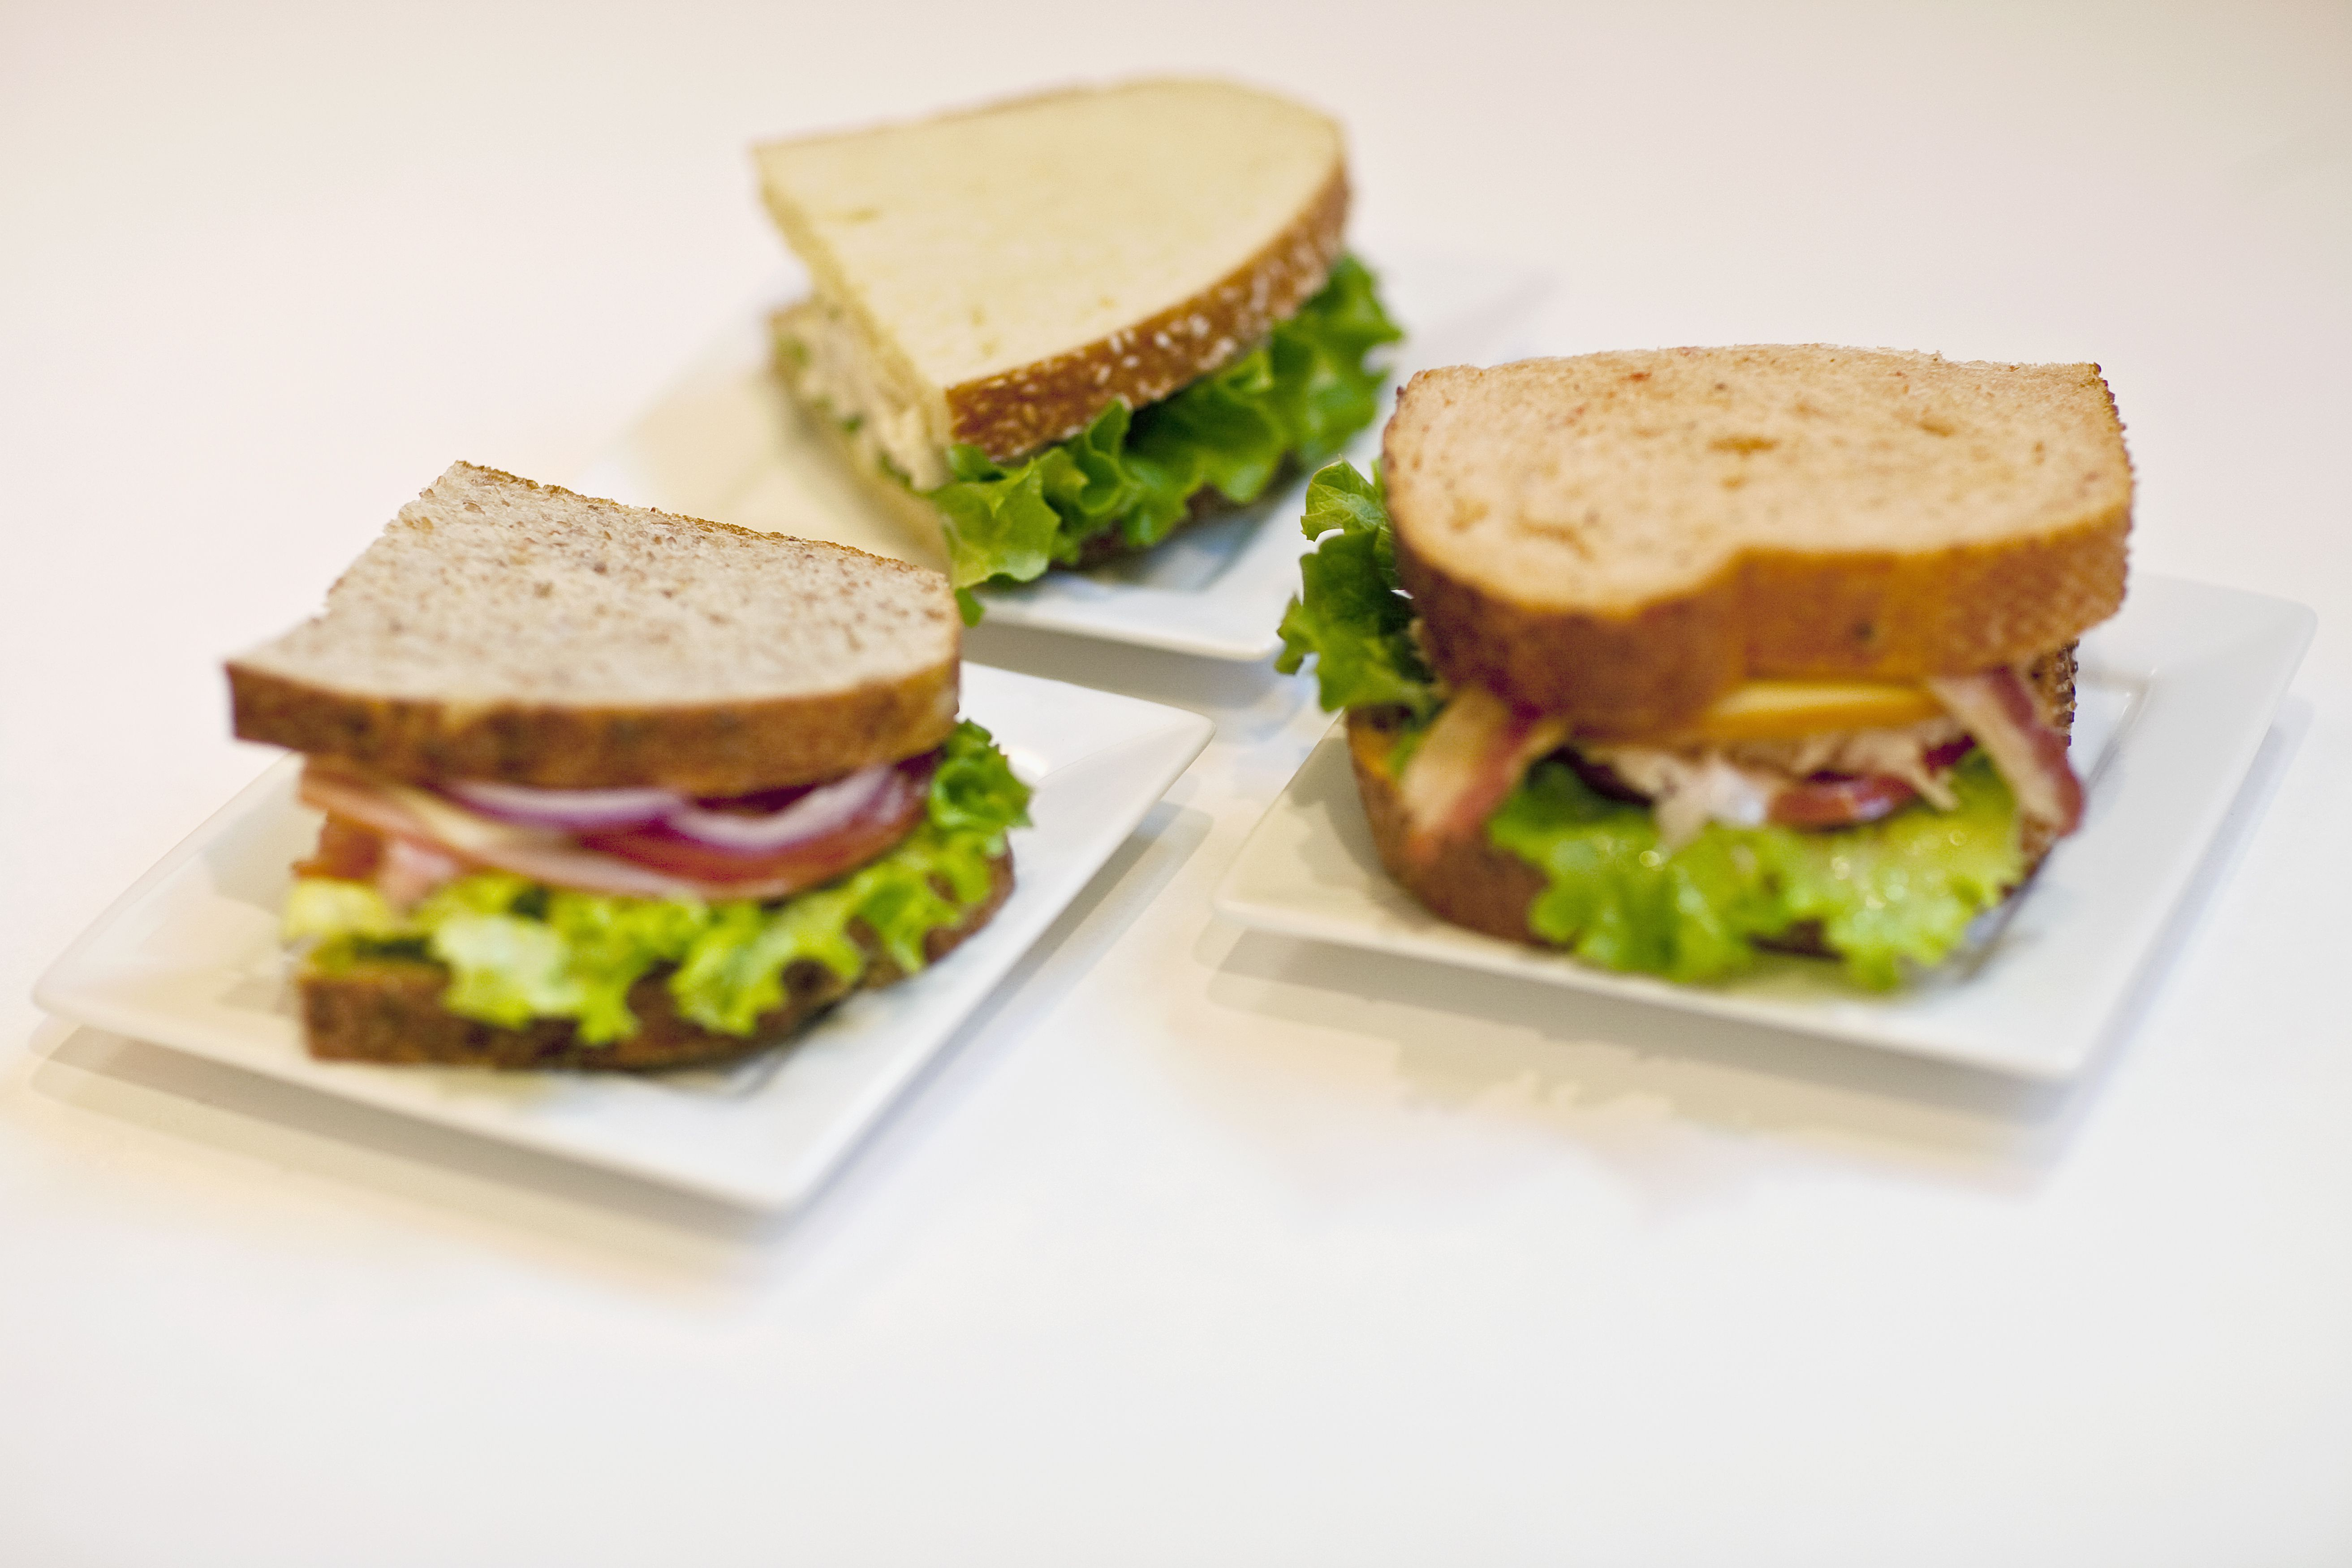 Healthy sandwiches make for a quick meal.